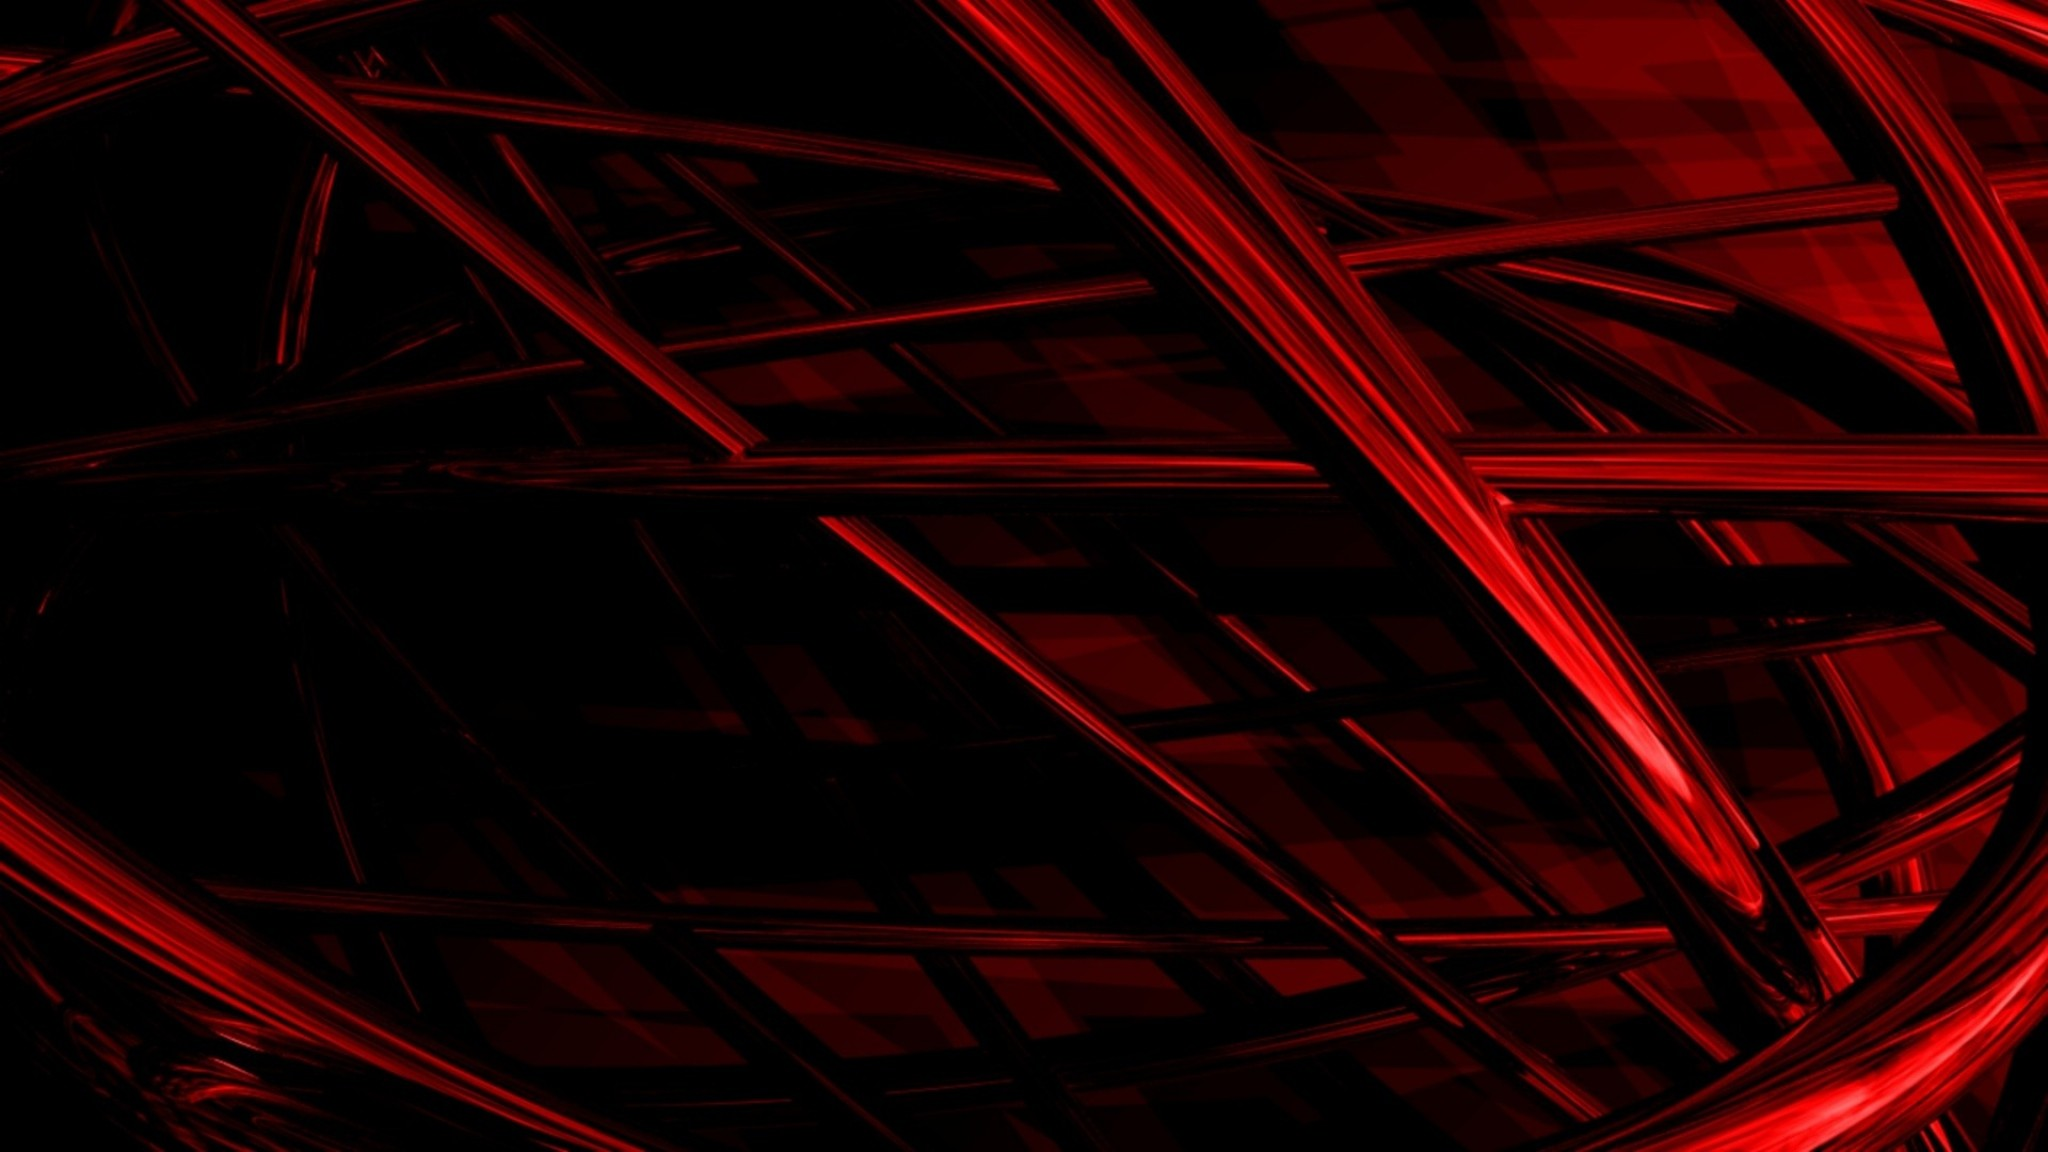 Hp omen wallpaper 1920x1200 - Omen wallpaper ...